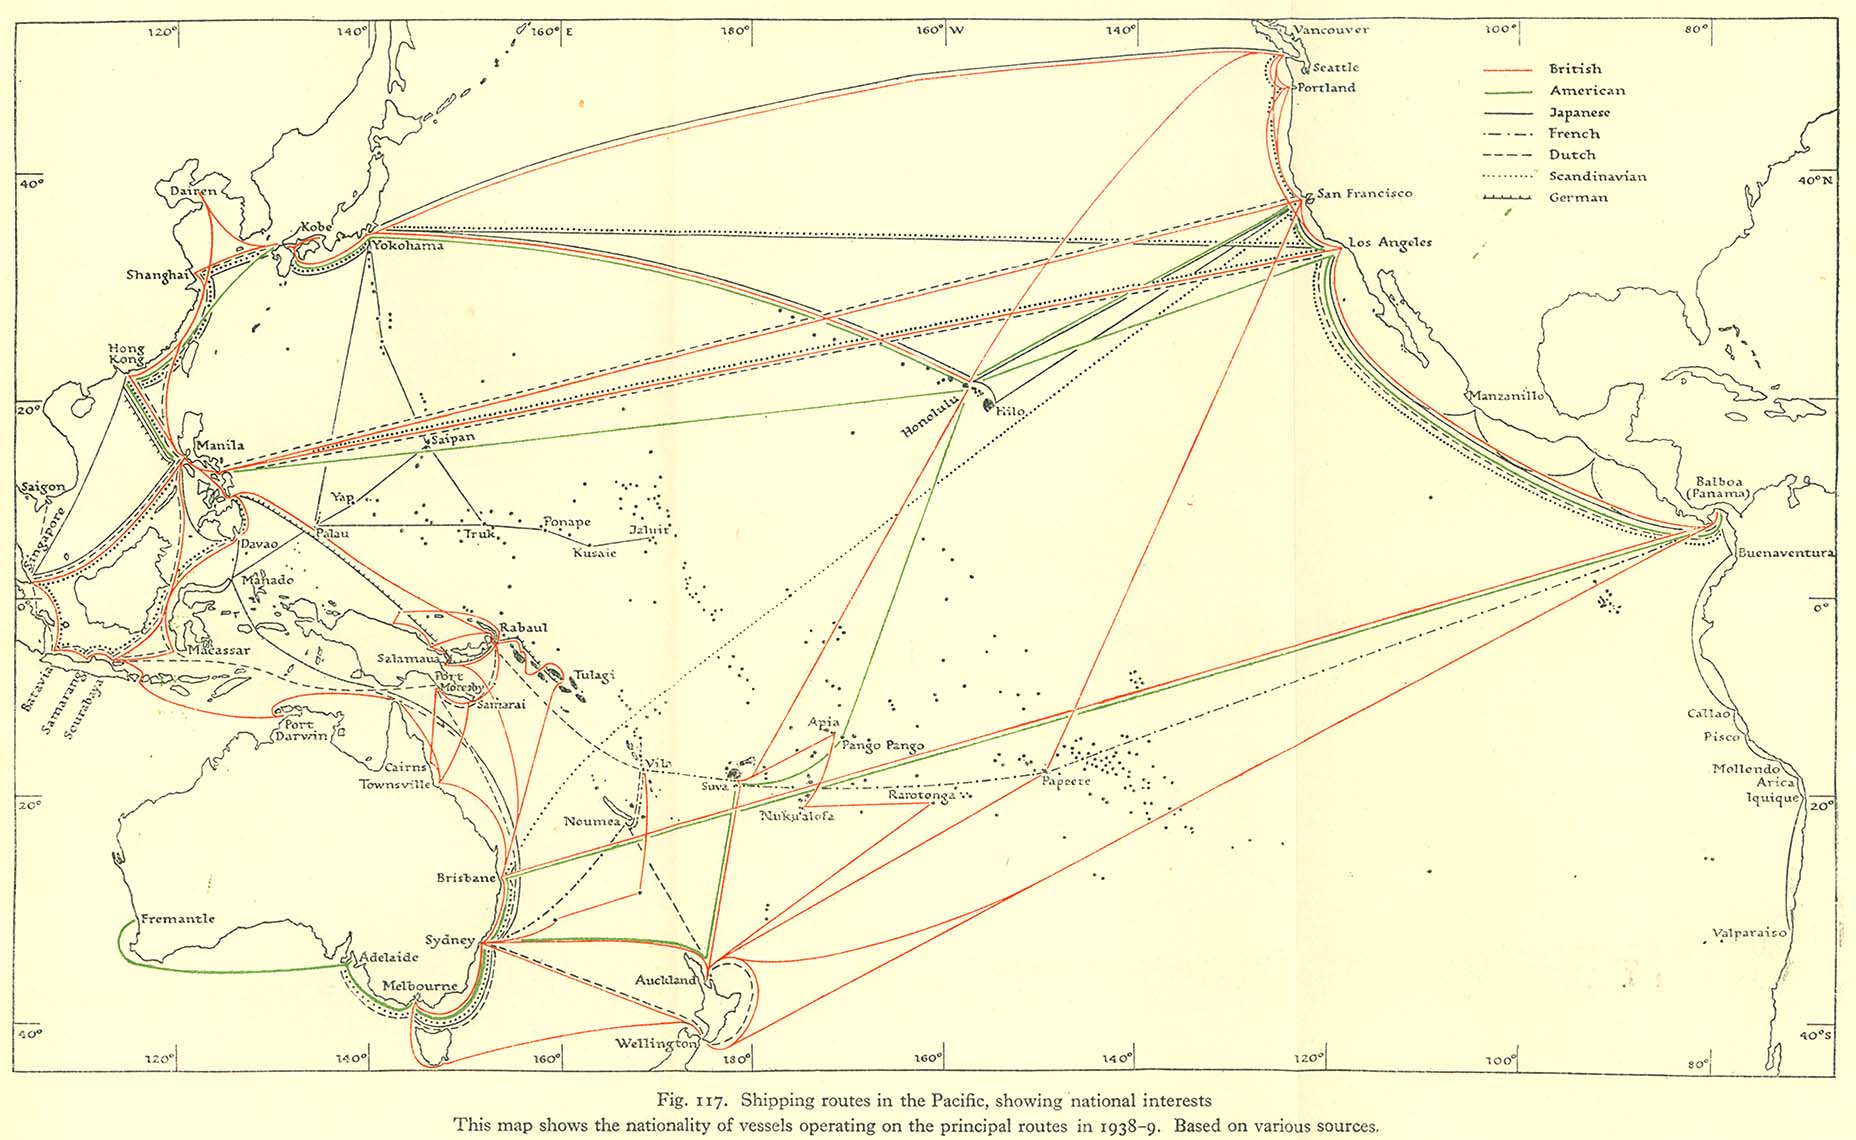 http://www.lib.utexas.edu/maps/historical/pacific_islands_1943_1945/shipping_routes_national_interest.jpg